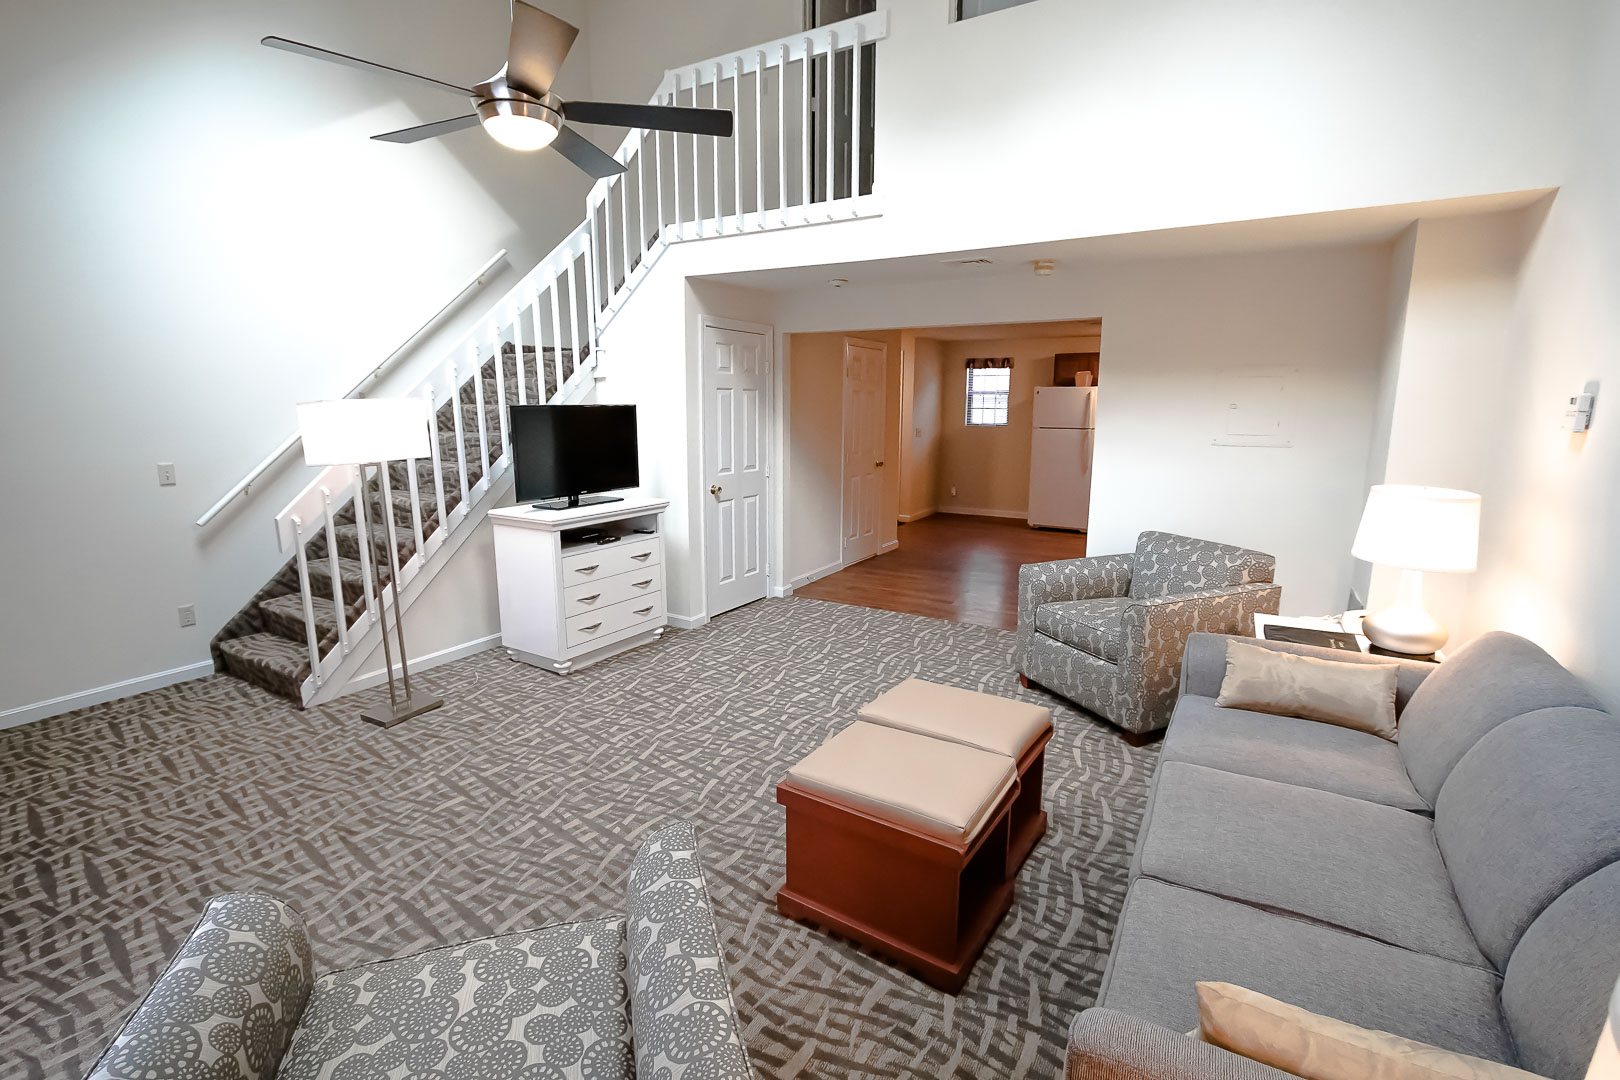 A spacious two-story condominiums at VRI's Sea Mist Resort in Massachusetts.